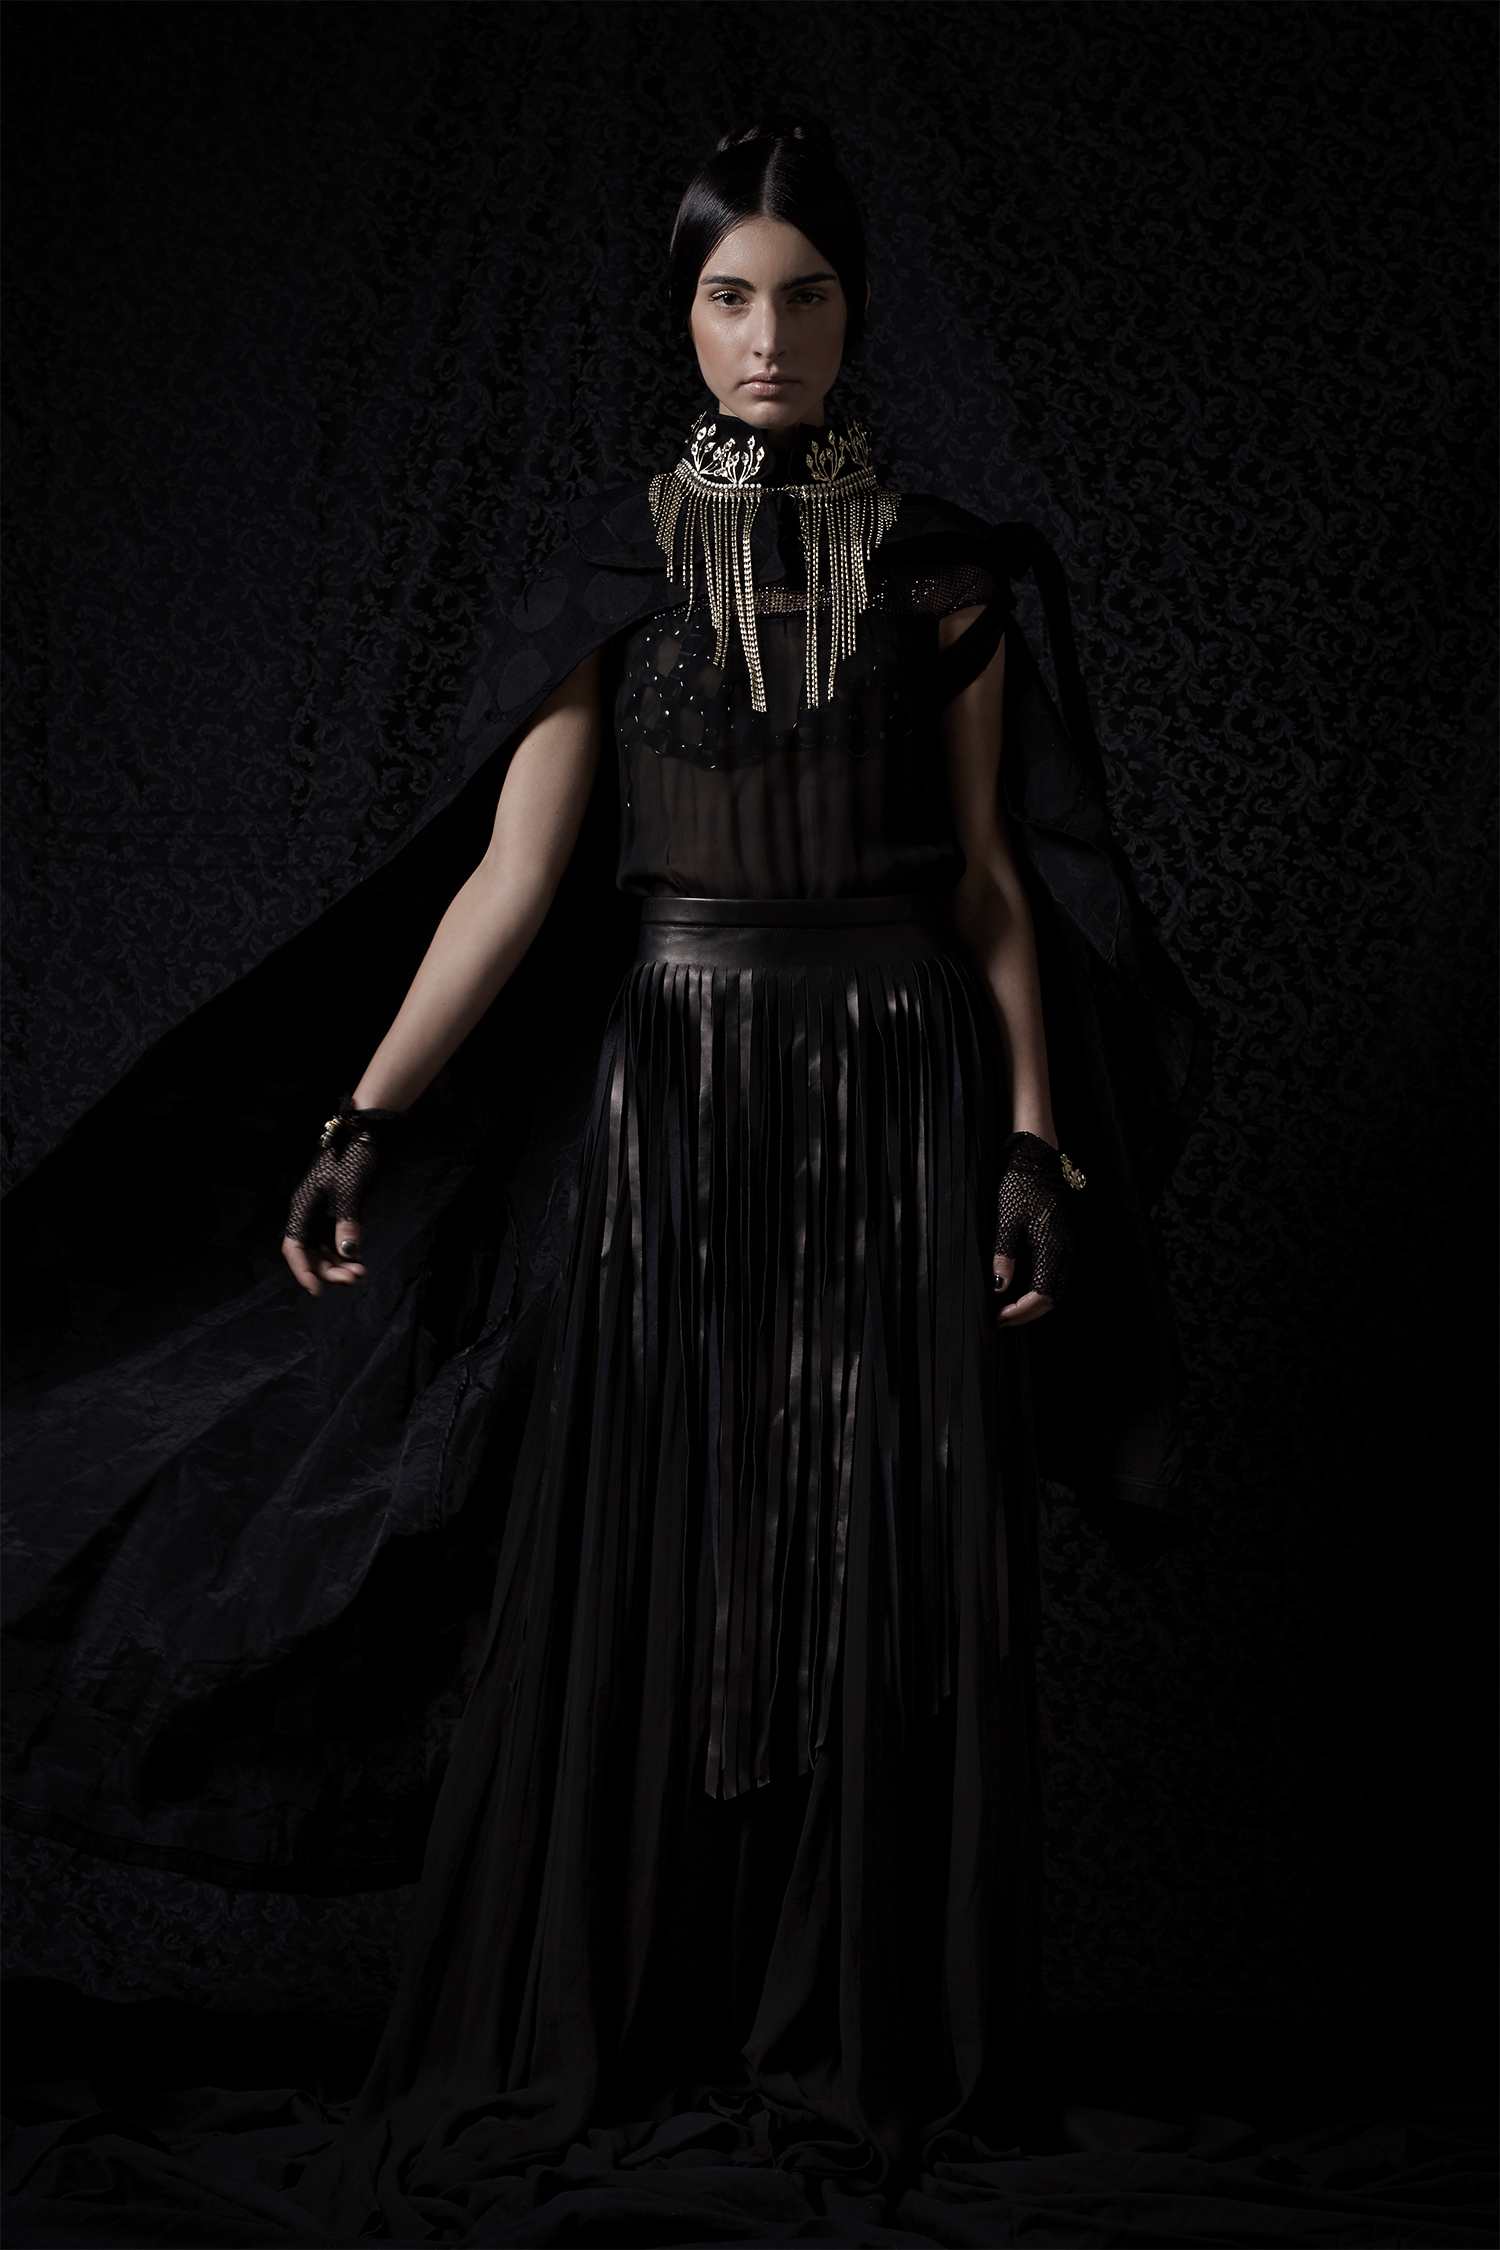 Black dress, Luigi Borbone; black cape, Yojiro Kake; black leather and metal bra and leather fringe skirt, Zora Romanska; crown (used as a collar), Vittorio Ceccoli Jewelry